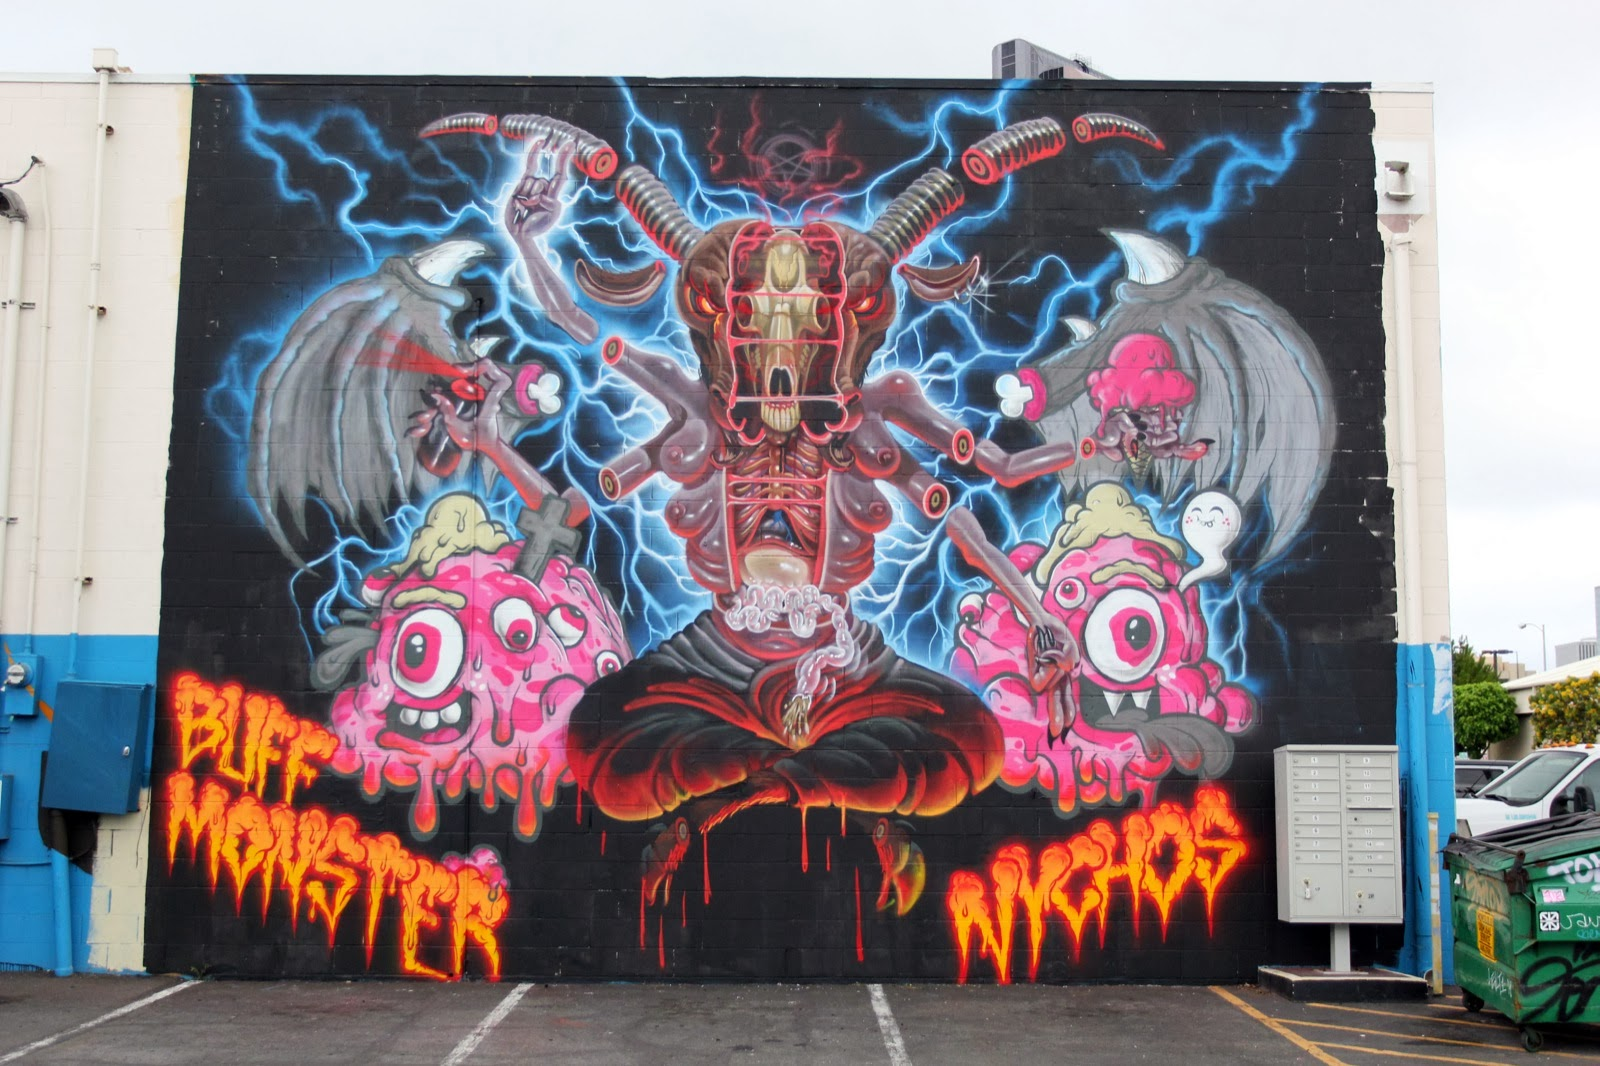 Hail Satan! While you discovered some progress shots a few days ago (covered), Nychos and Buff Monster have now wrapped up their collaboration for POW! WOW! Hawaii in Honolulu. 1